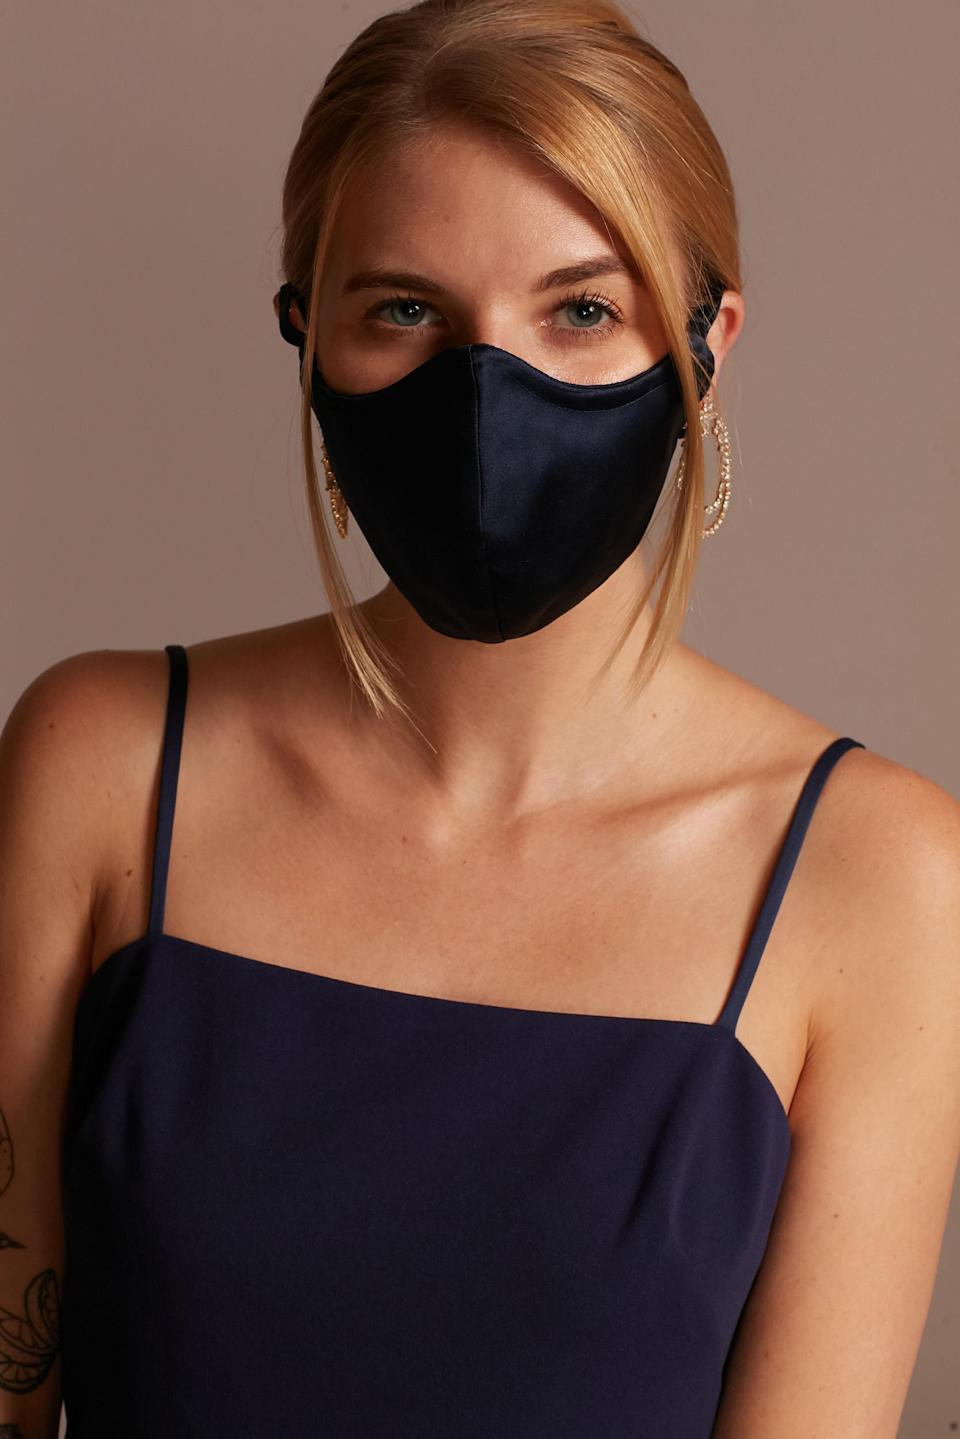 These satin bridesmaid masks can be made to exactly match their dresses. (David's Bridal)